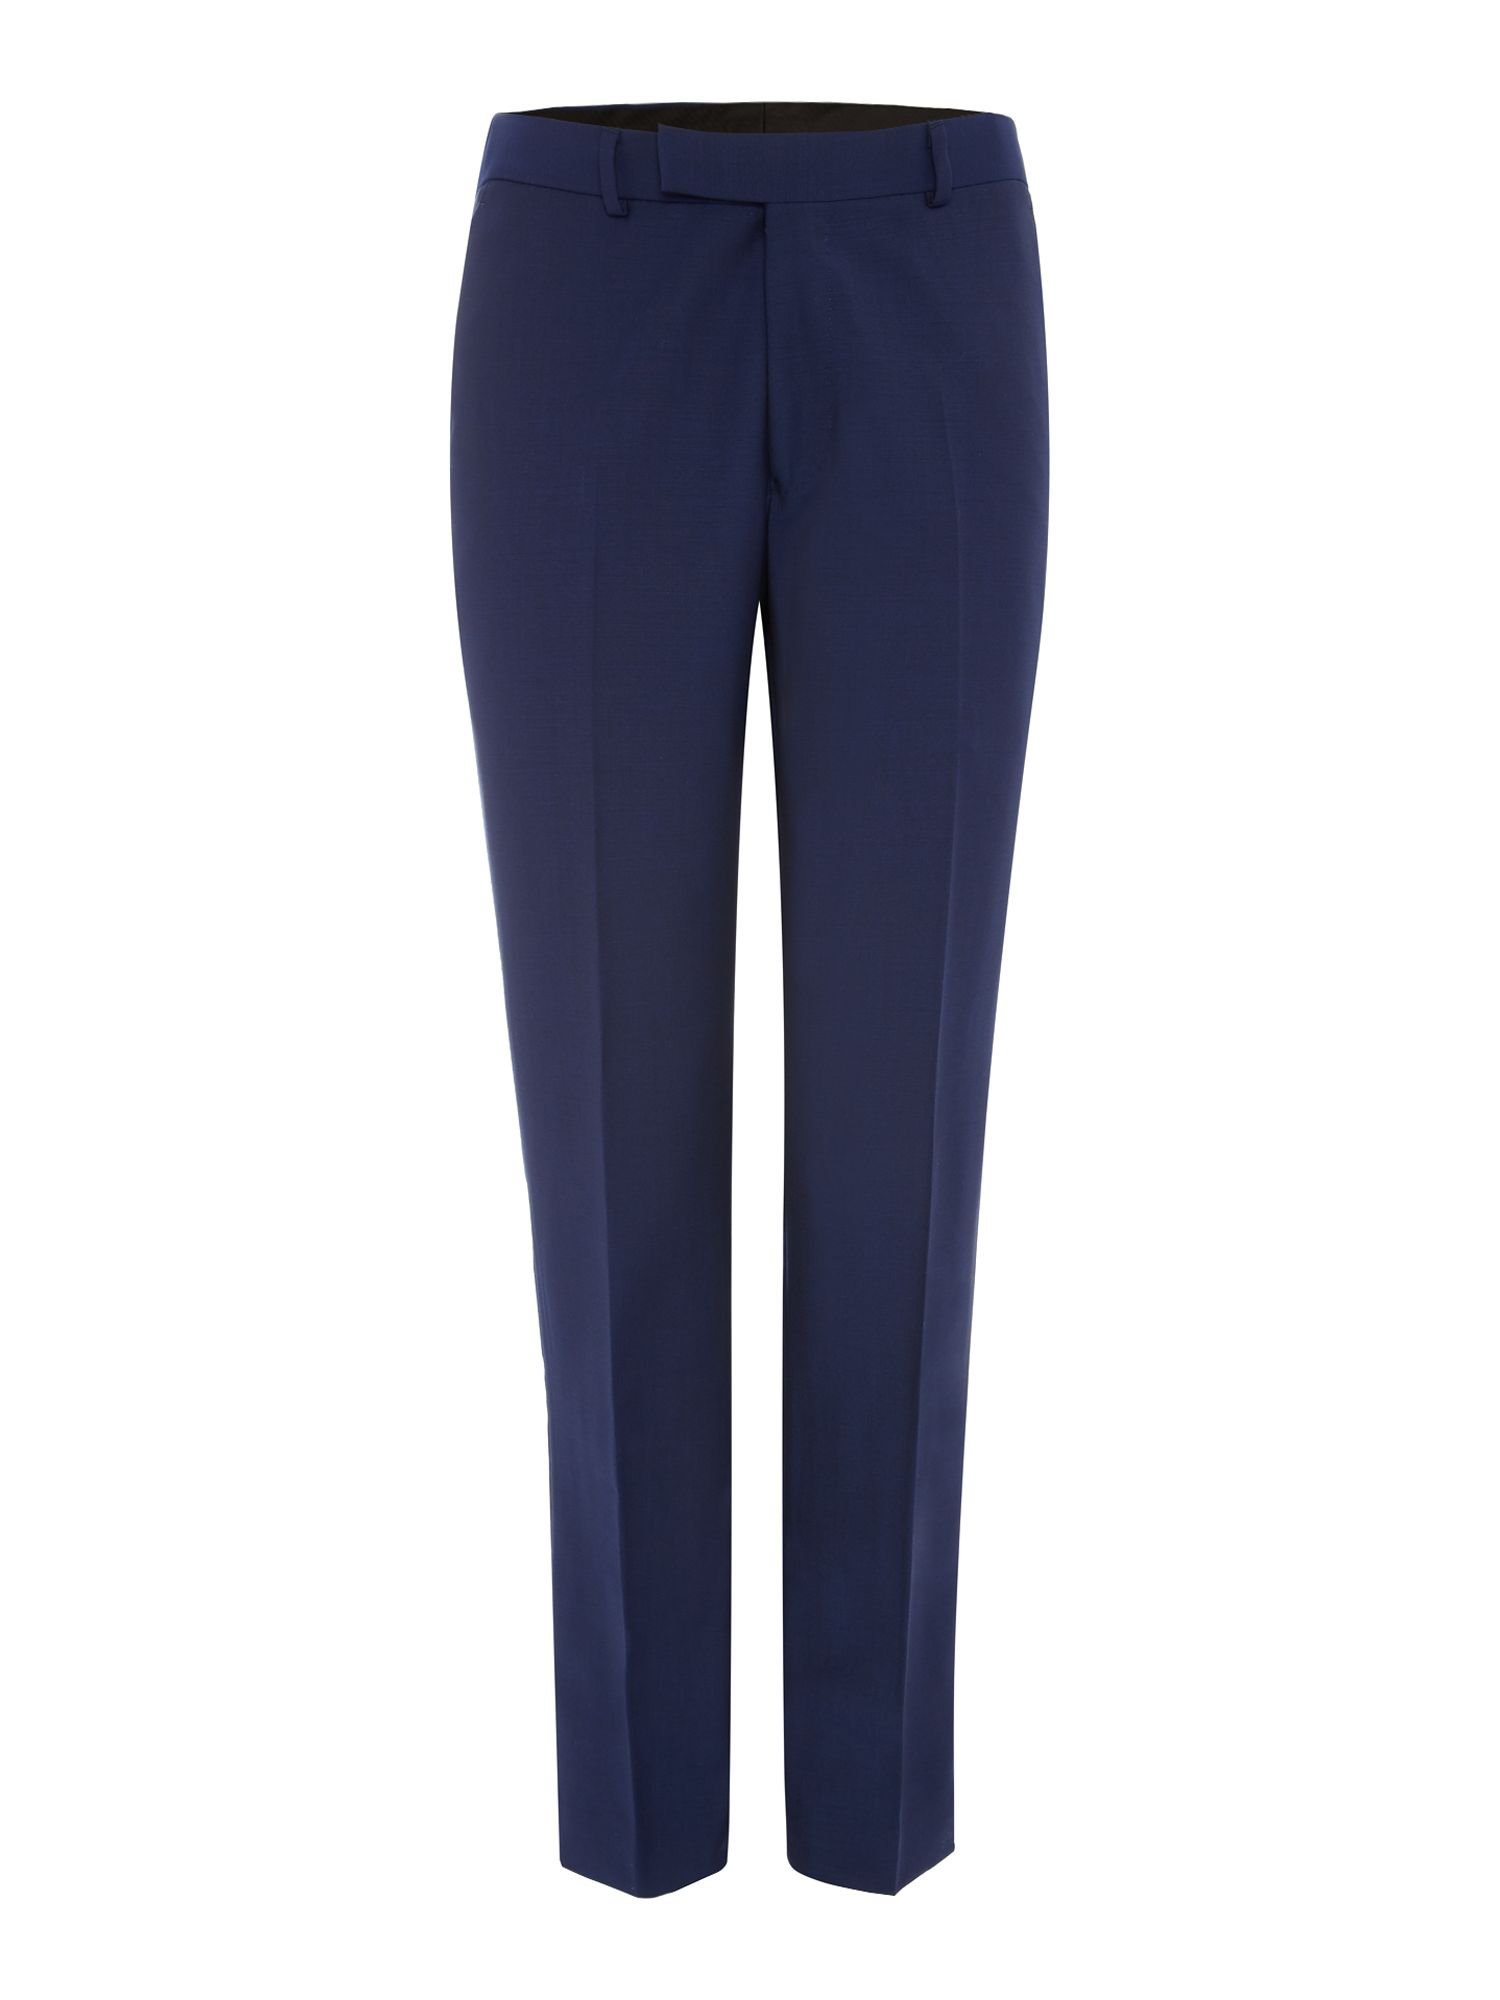 Men's Simon Carter Solid Dark Blue Suit Trousers, Dark Blue